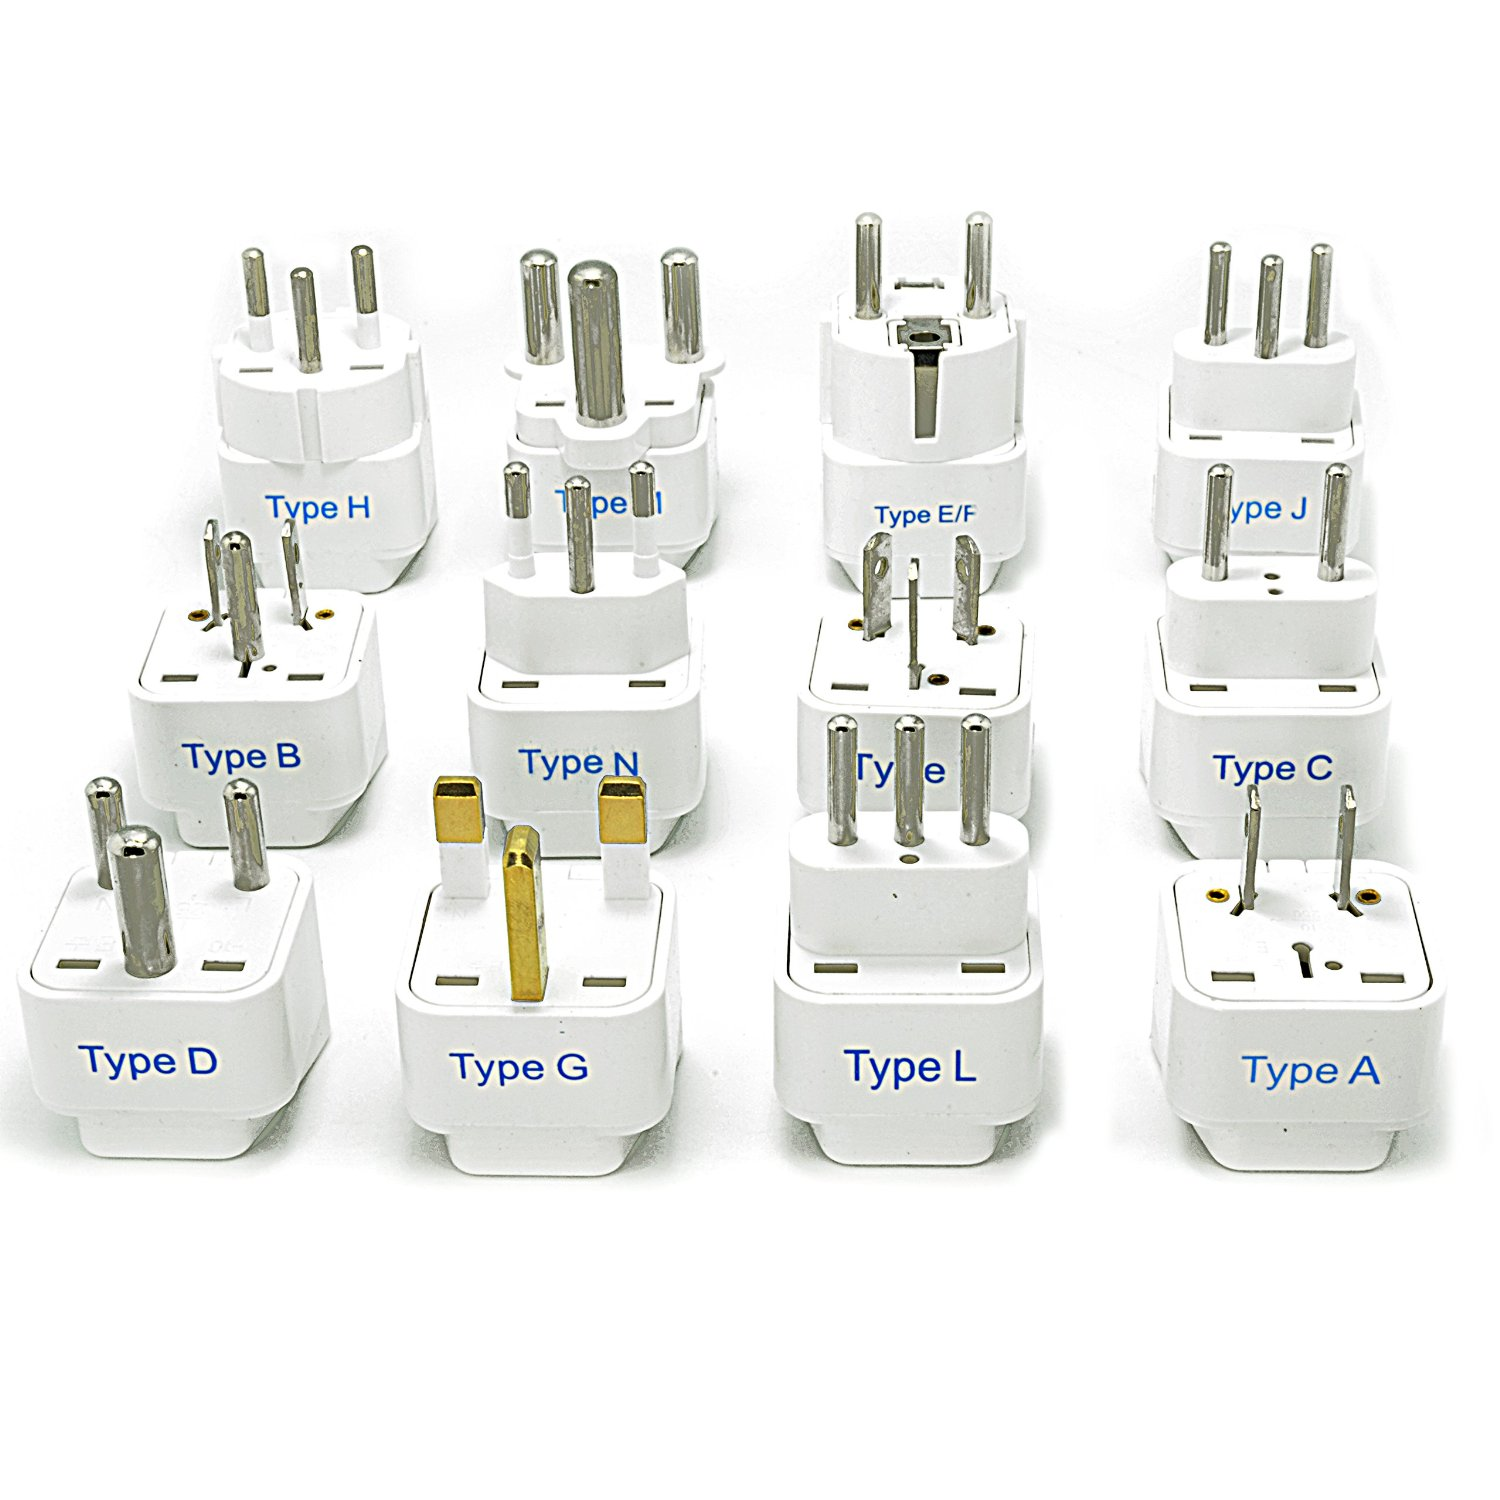 Ceptics Complete International Grounded Universal Travel Plug Adapter Set of 12